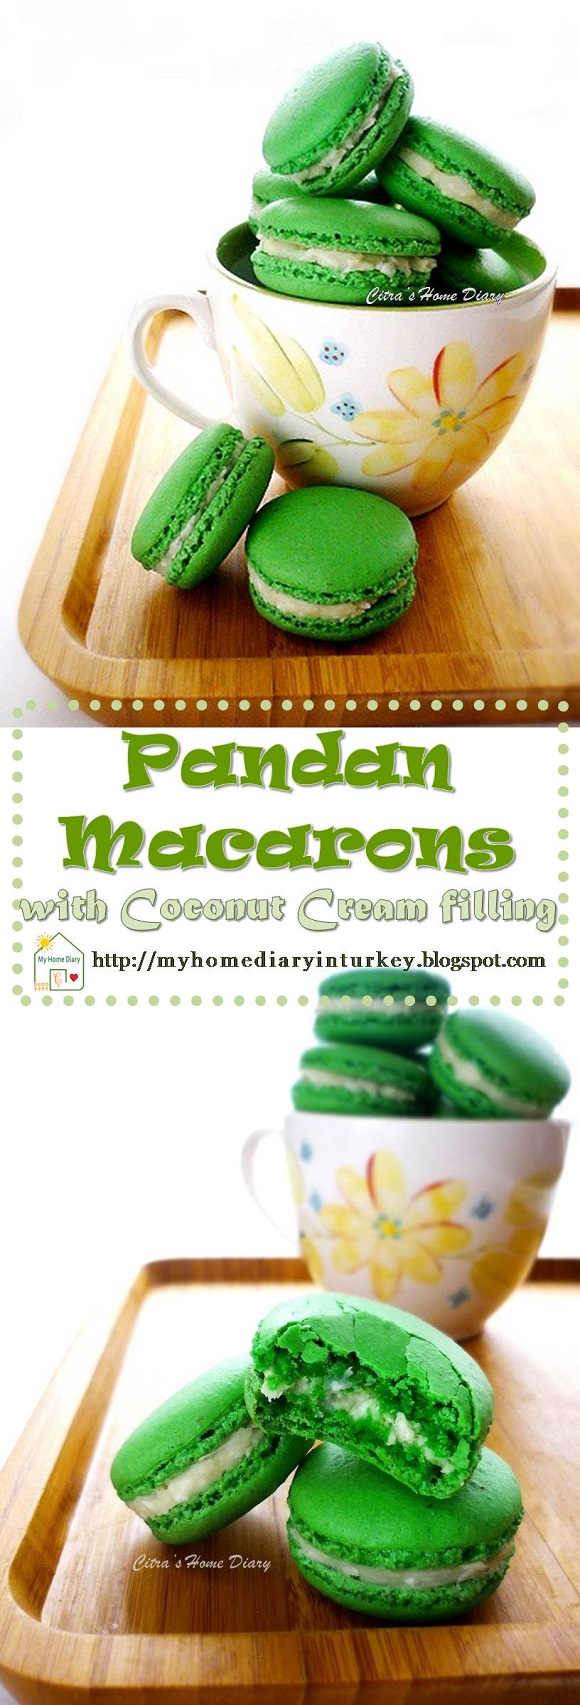 Pandan Macarons with Coconut Cream filling | Çitra's Home Diary.